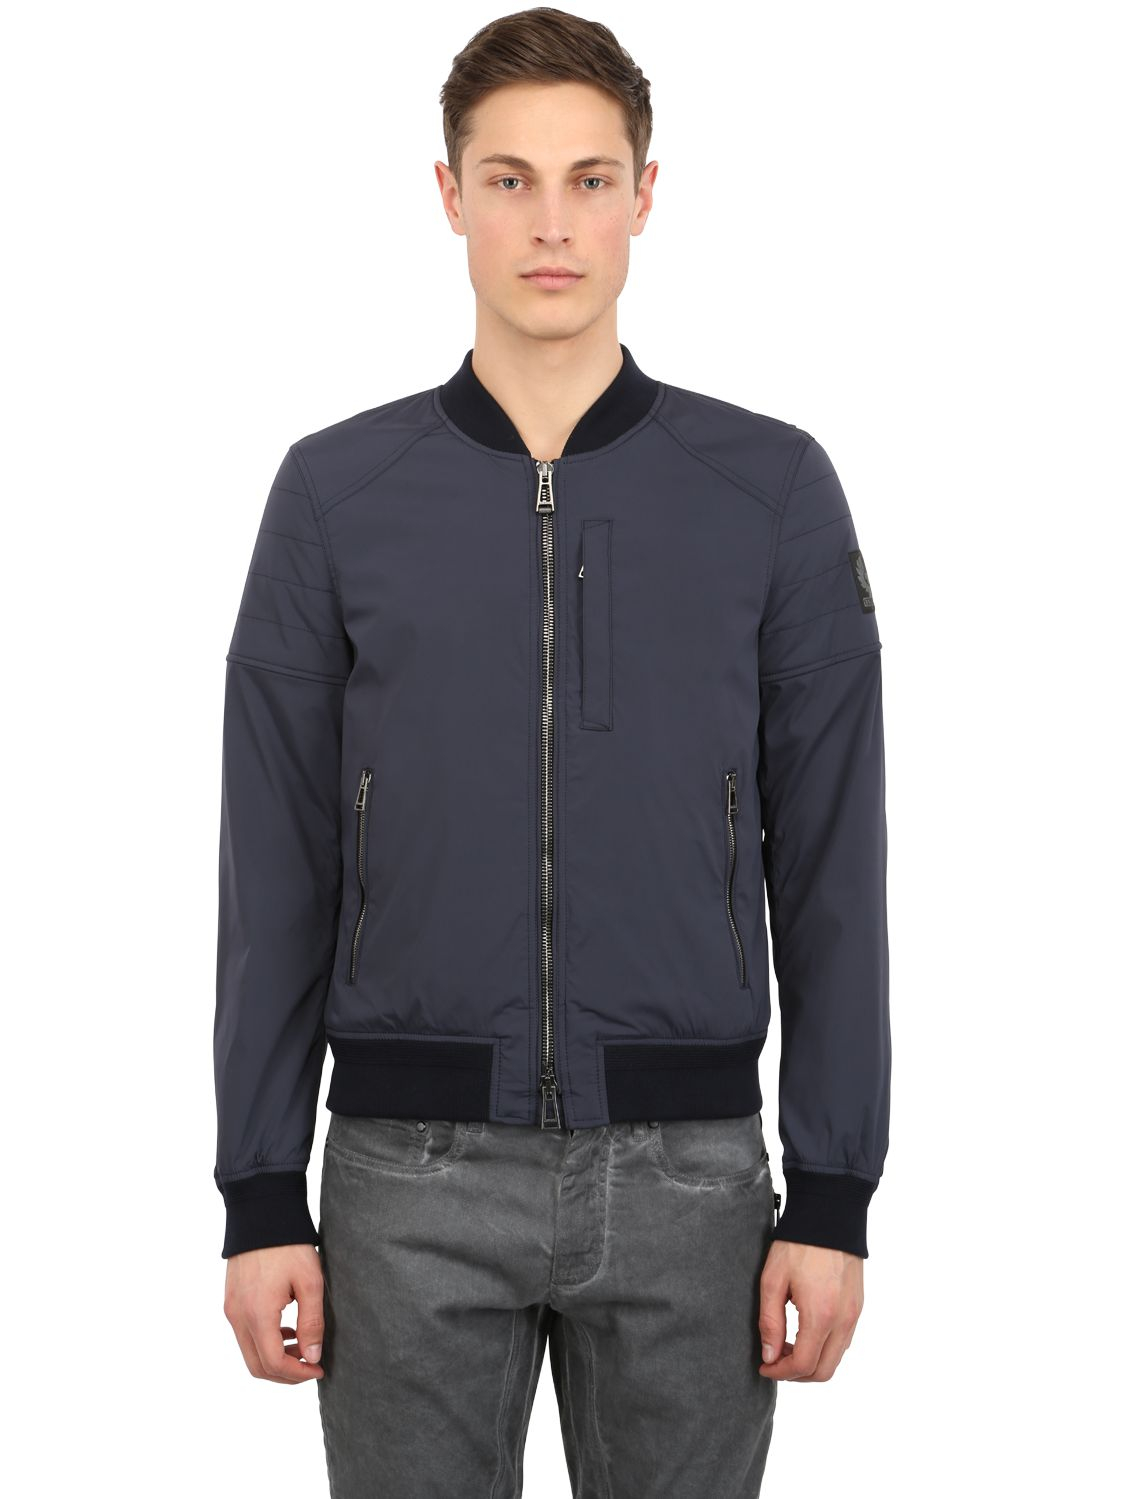 Nylon Bomber Jacket Mens Jacket To